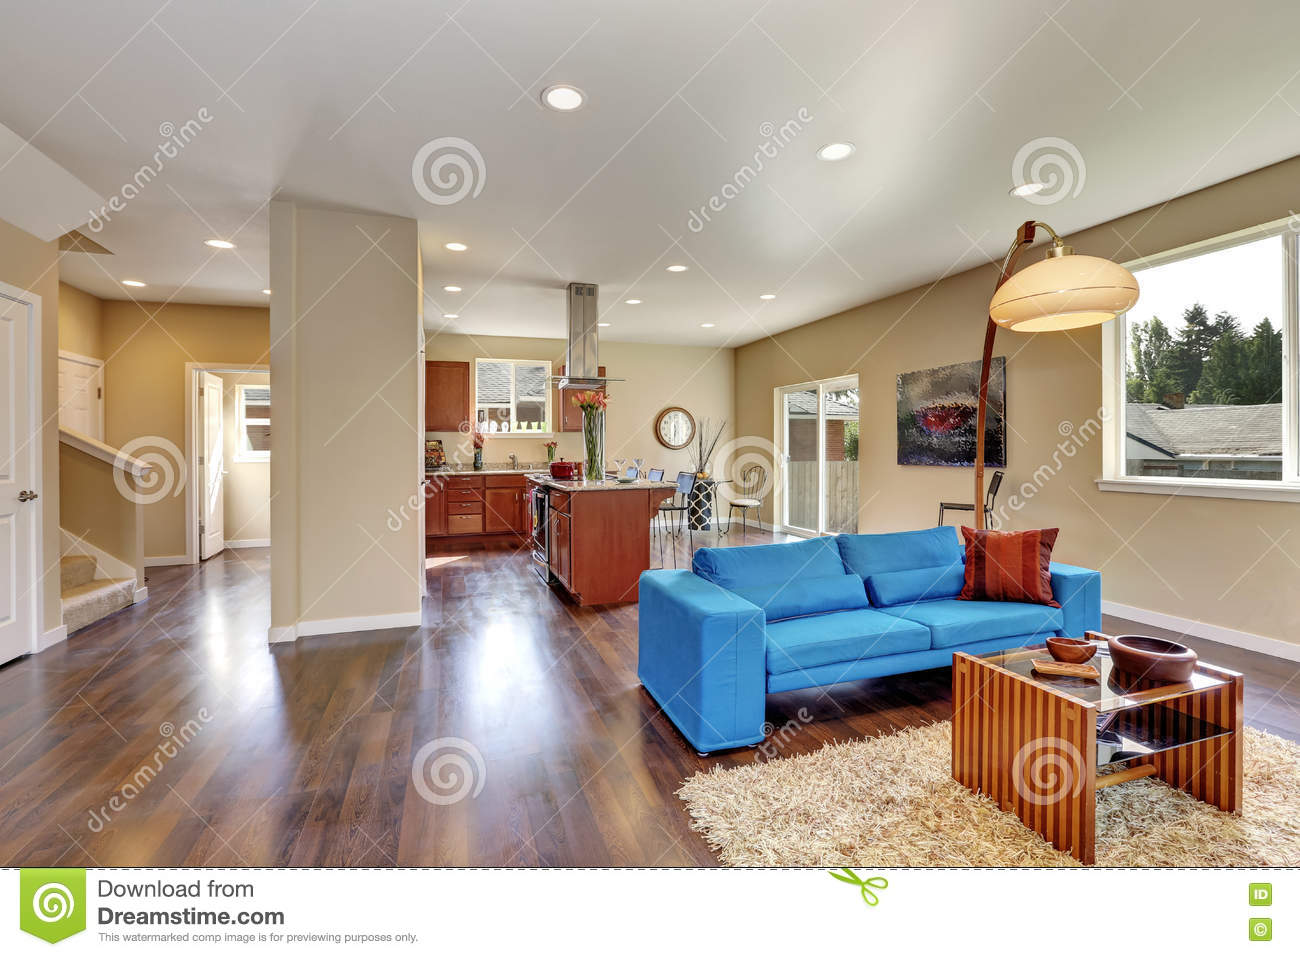 Nicely Decorated Living Room Interior With Bright Blue Sofa